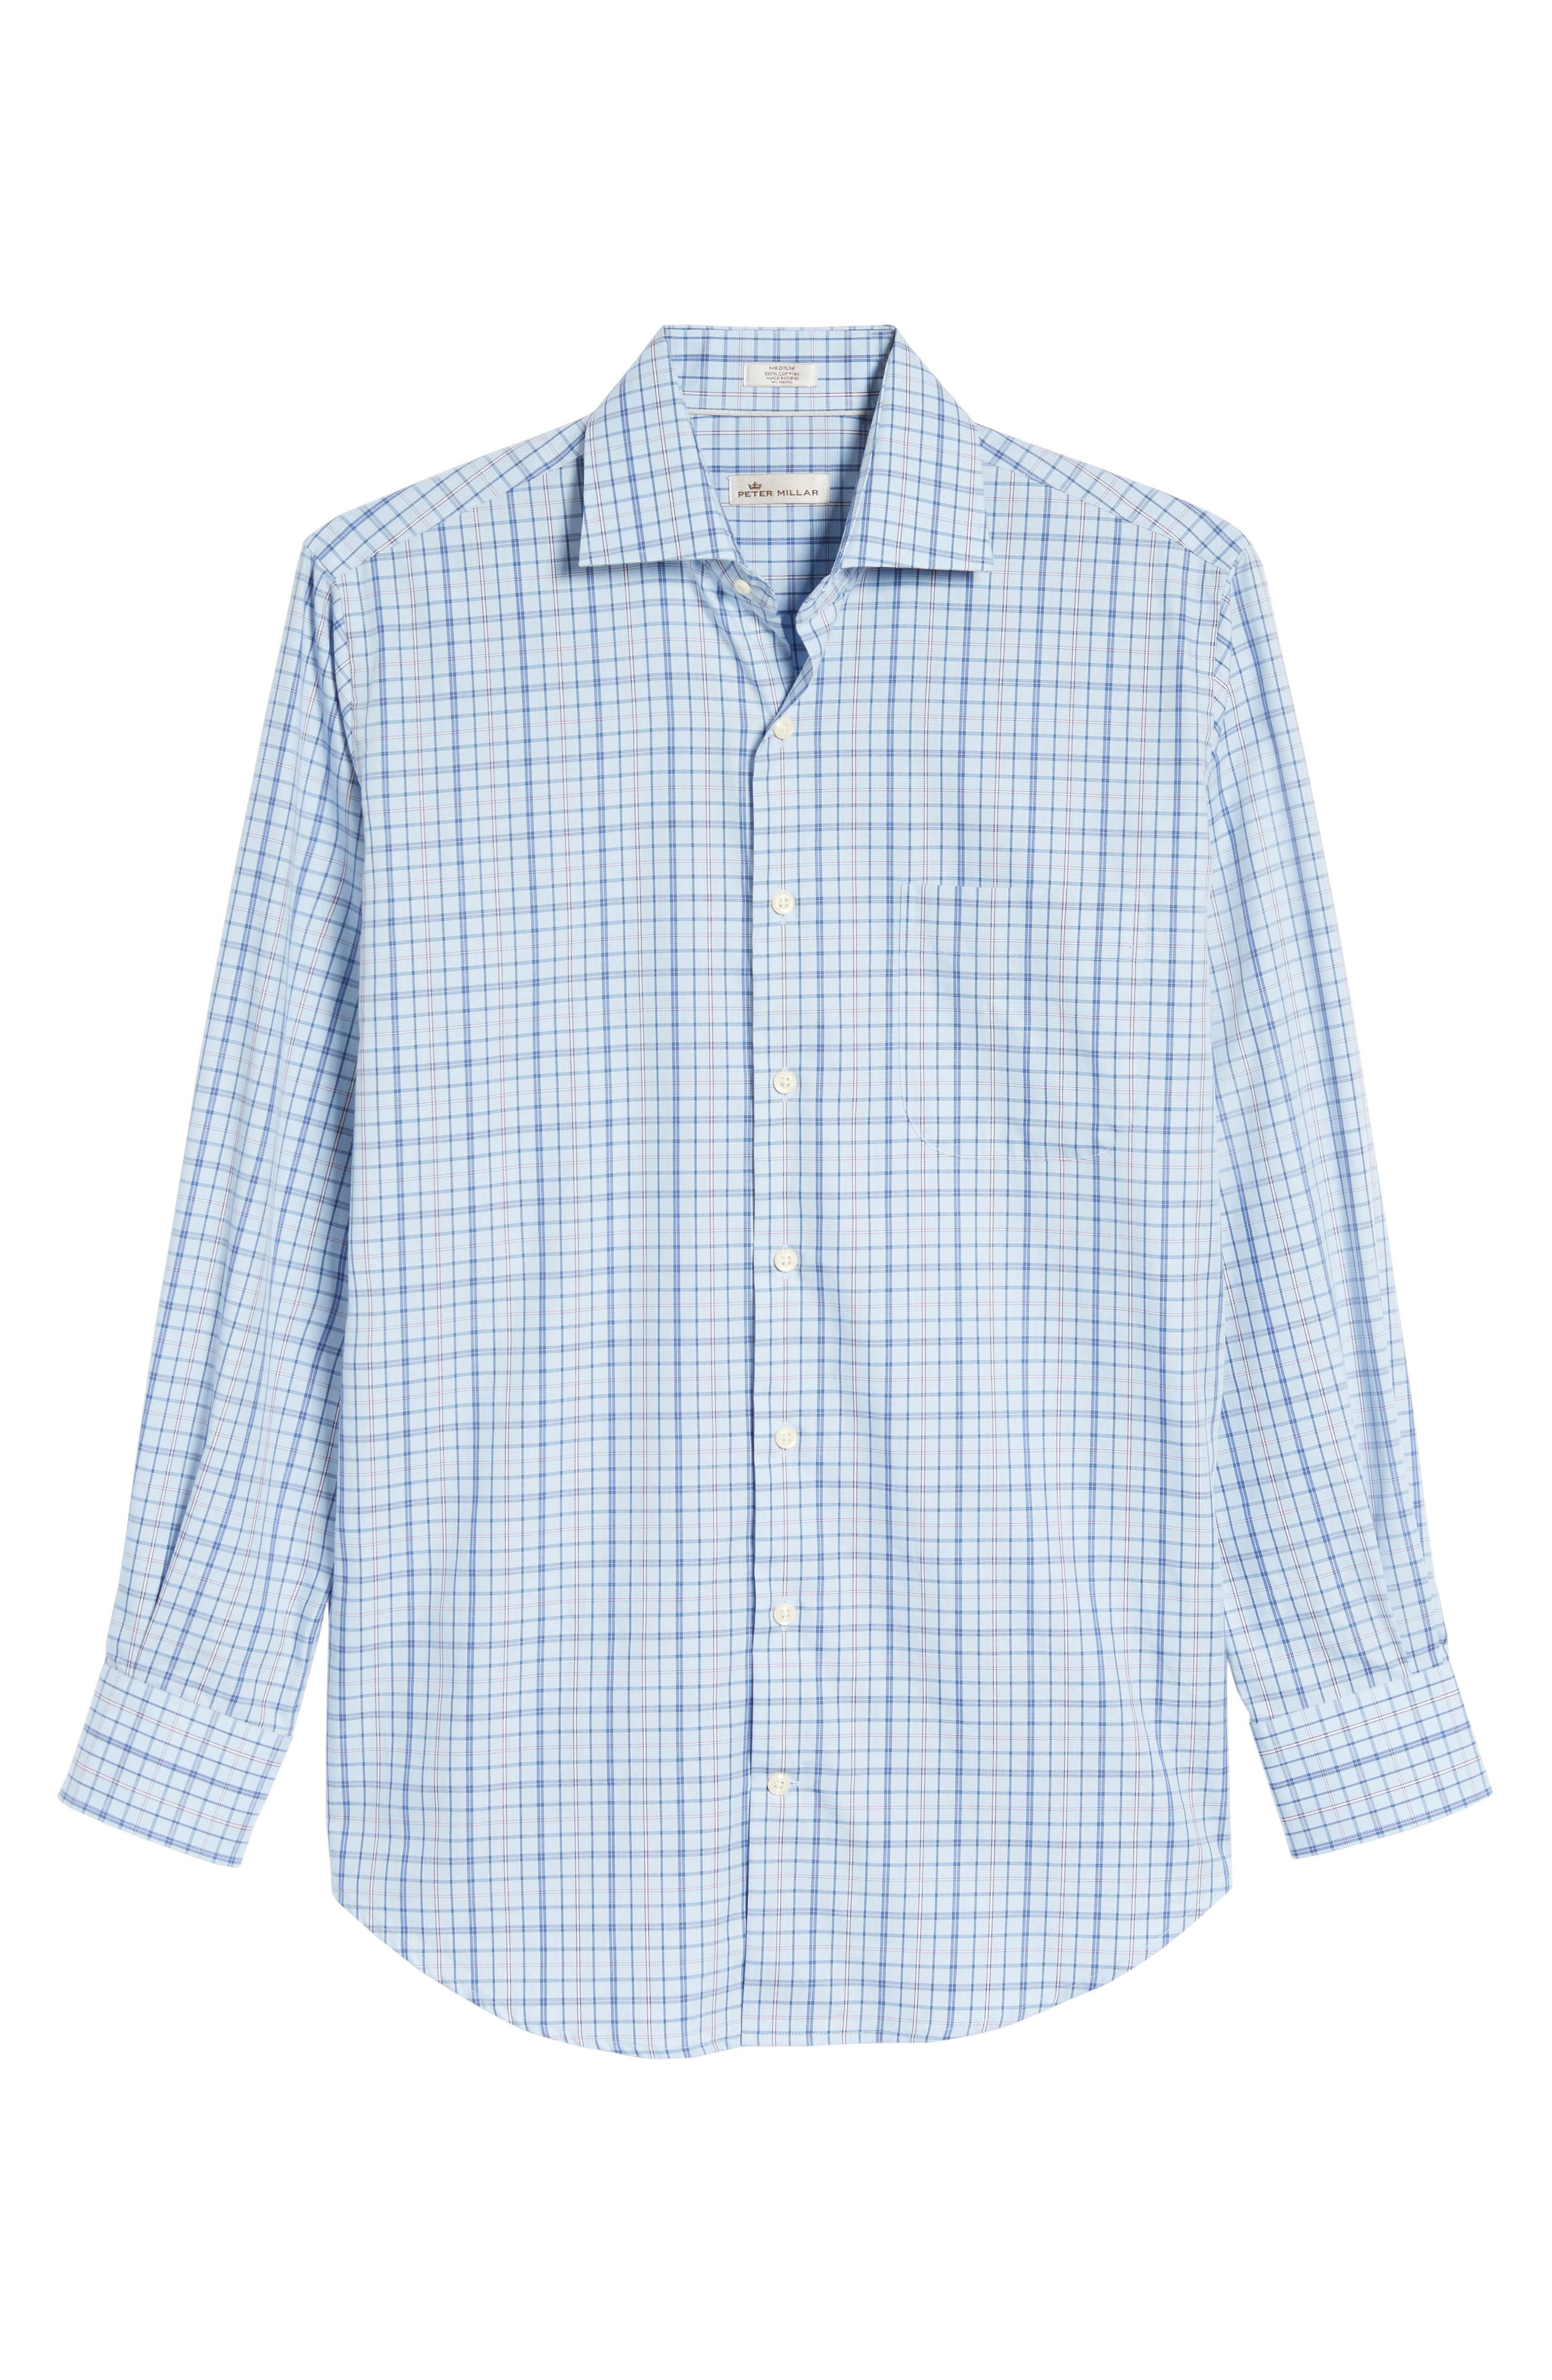 Coastland Regular Fit Plaid Sport Shirt,                             Alternate thumbnail 6, color,                             437